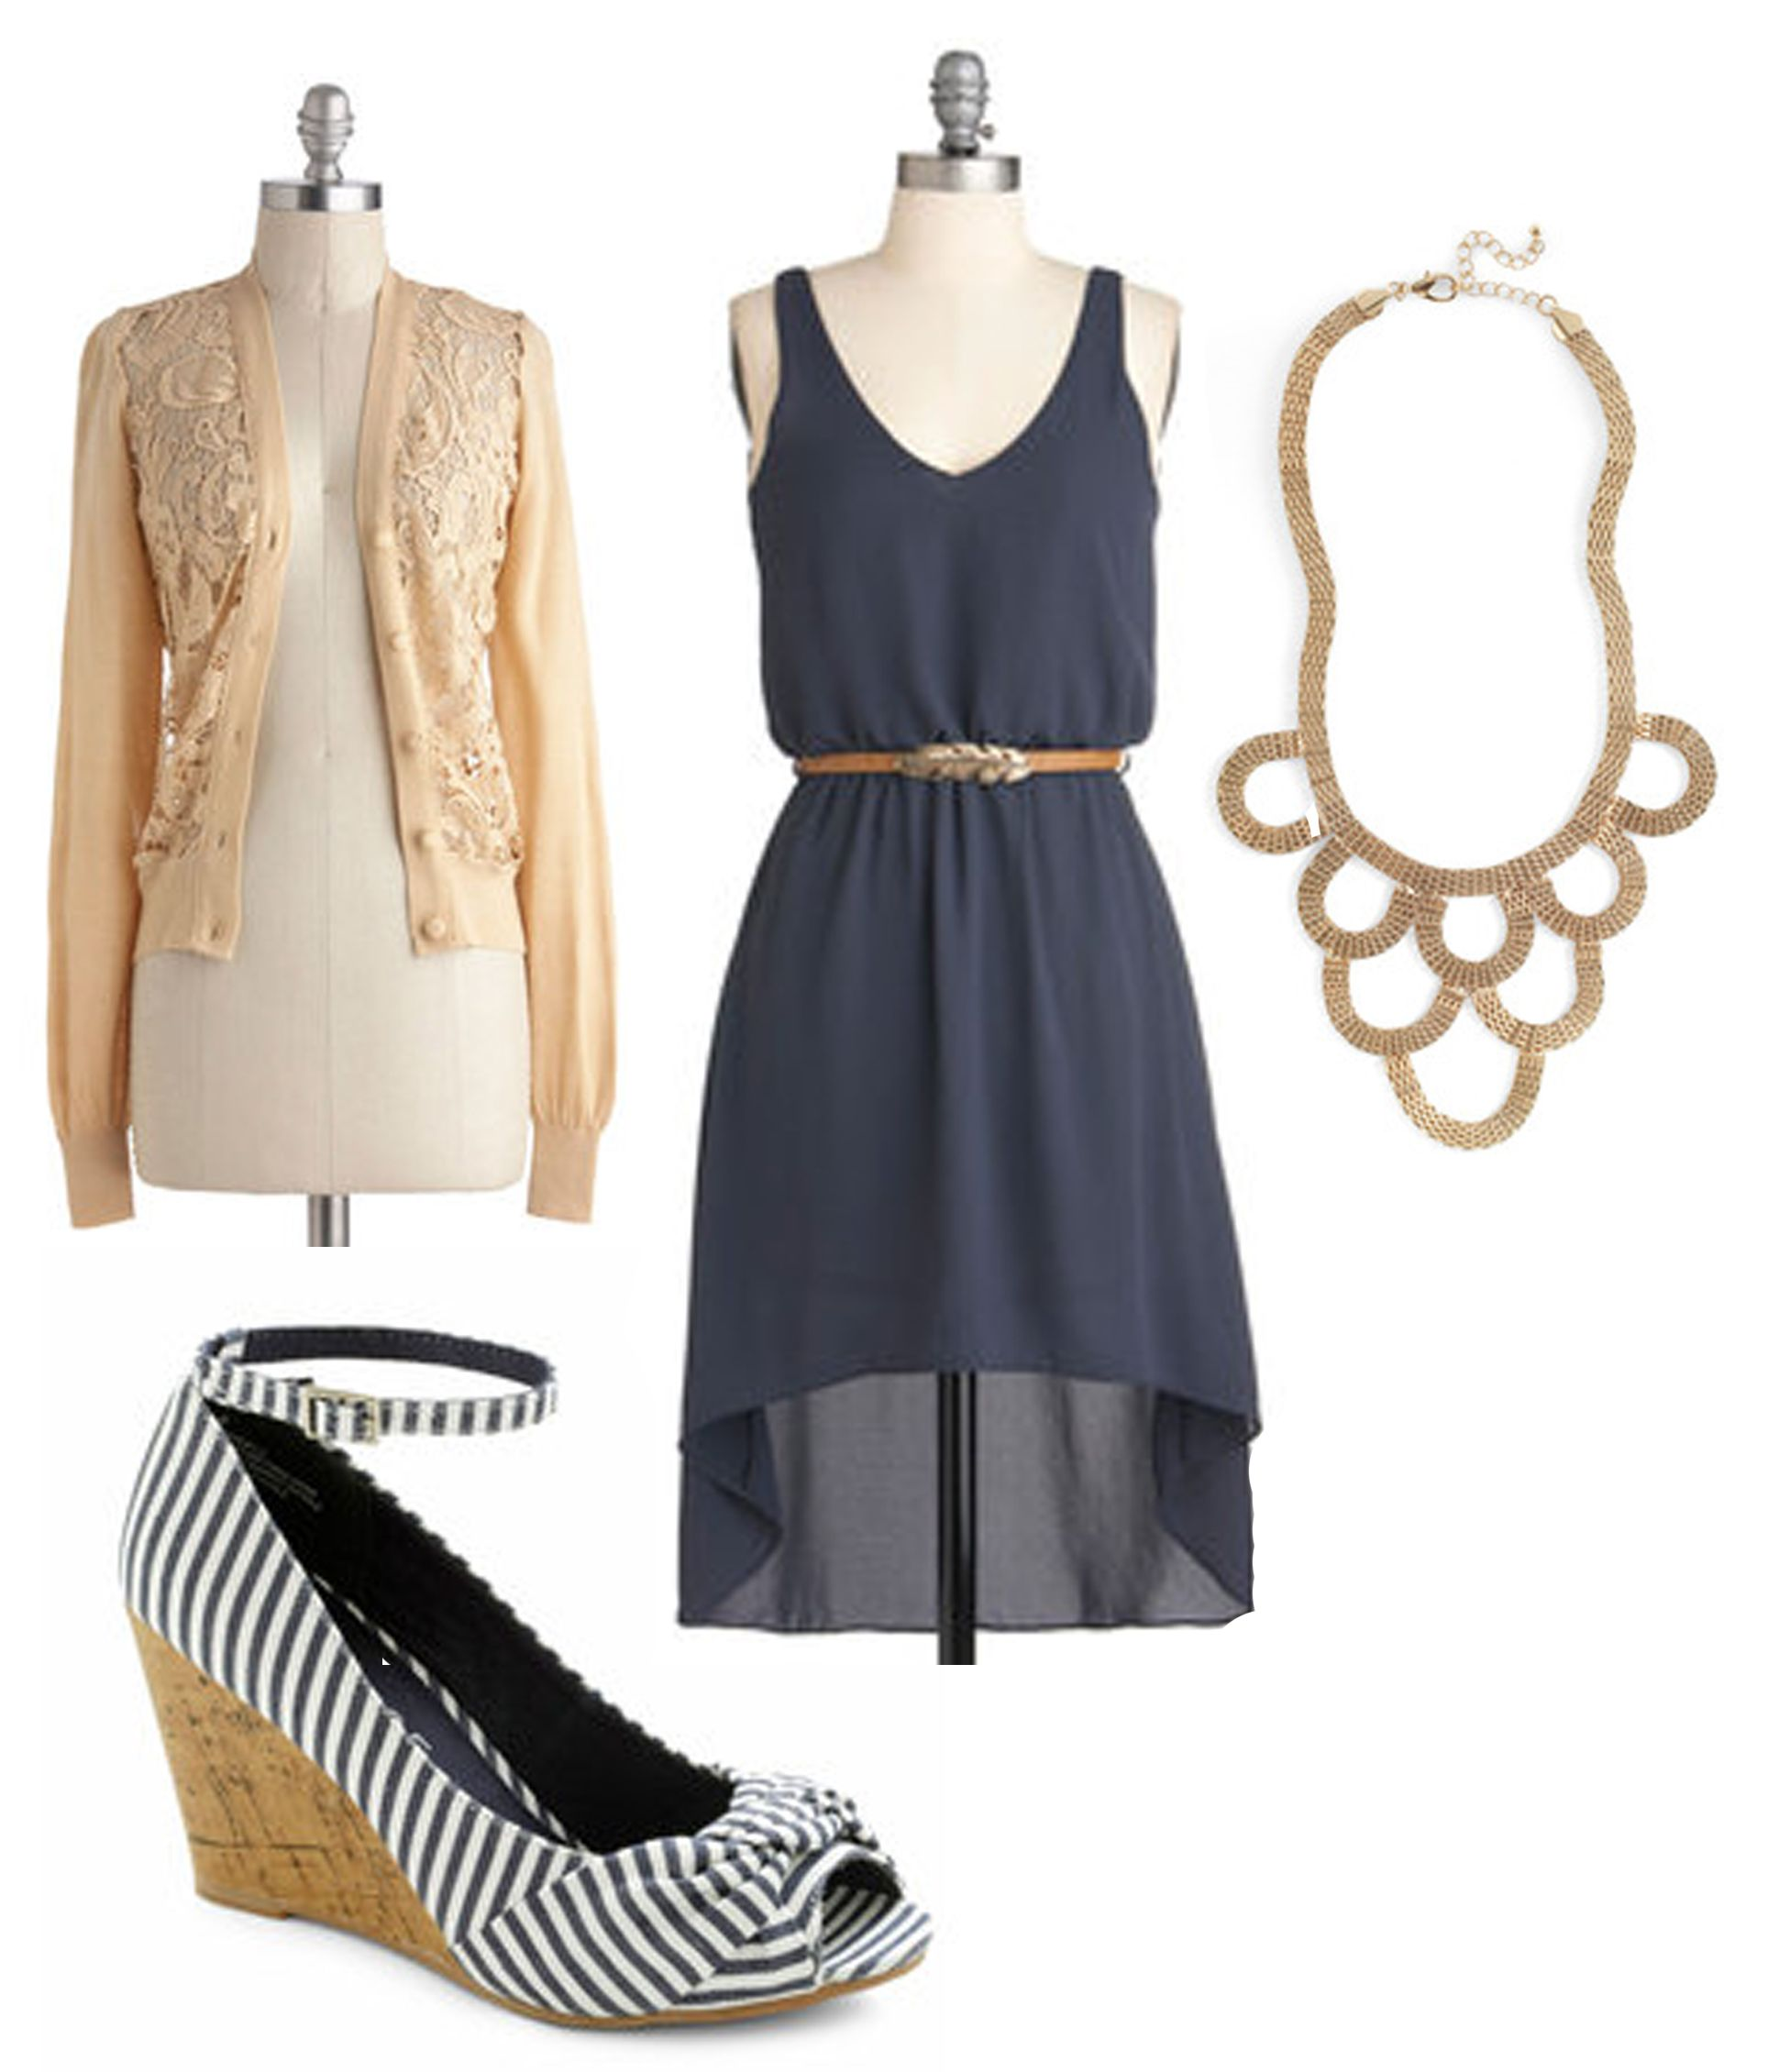 Outdoor Wedding Outfit Ideas: Wedding Outfit-minus The Shoes